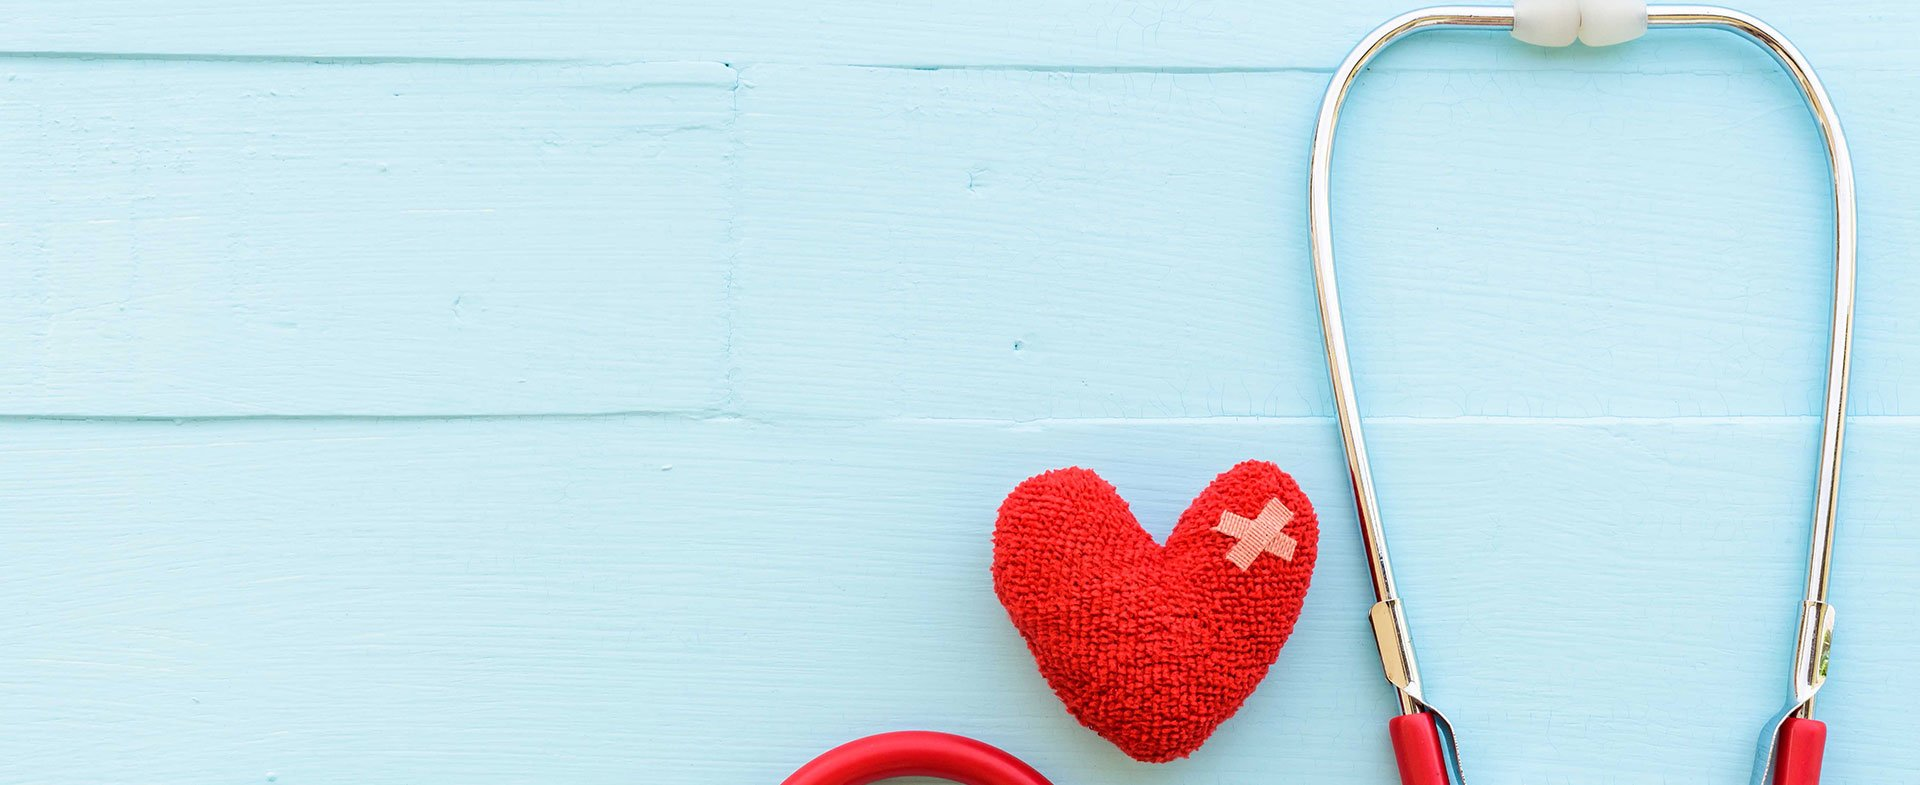 3 Experts Share Their Top Heart Health Advice